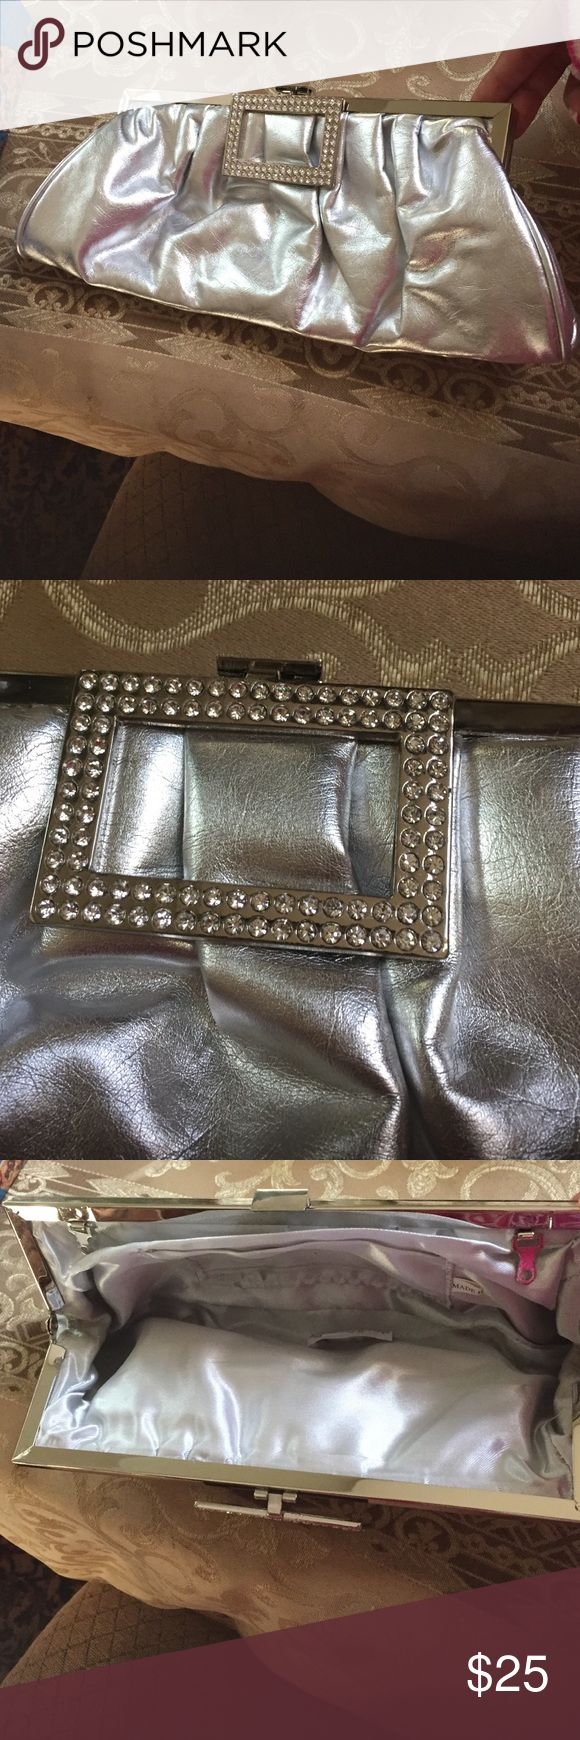 C Silver clutch + silver rhinestones!TAKING OFFERS Silver clutch with silver rhinestones on the clip ! Pocket inside . Great condition ! Color silver !👛🎉🎉🎉! TAKING REASONABLE OFFERS Bags Clutches & Wristlets